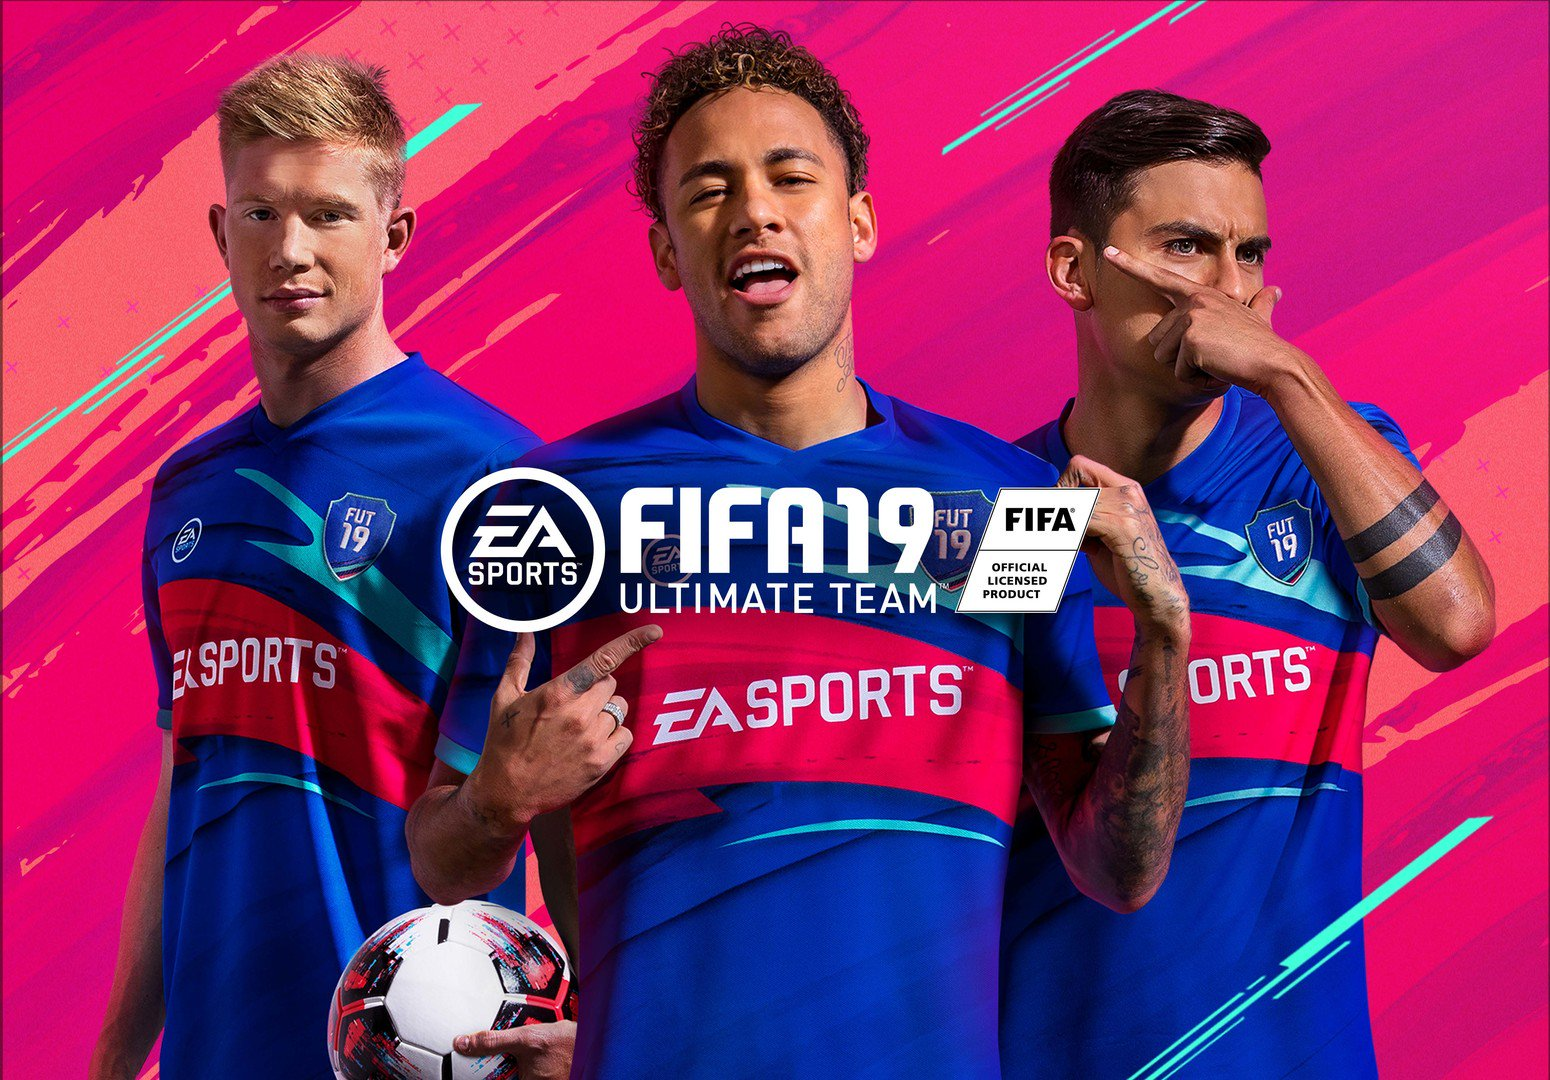 FIFA 19. Systeem: Nintendo Switch, PC, PS3, PS4, Xbox 360, Xbox One Genre: Sport.